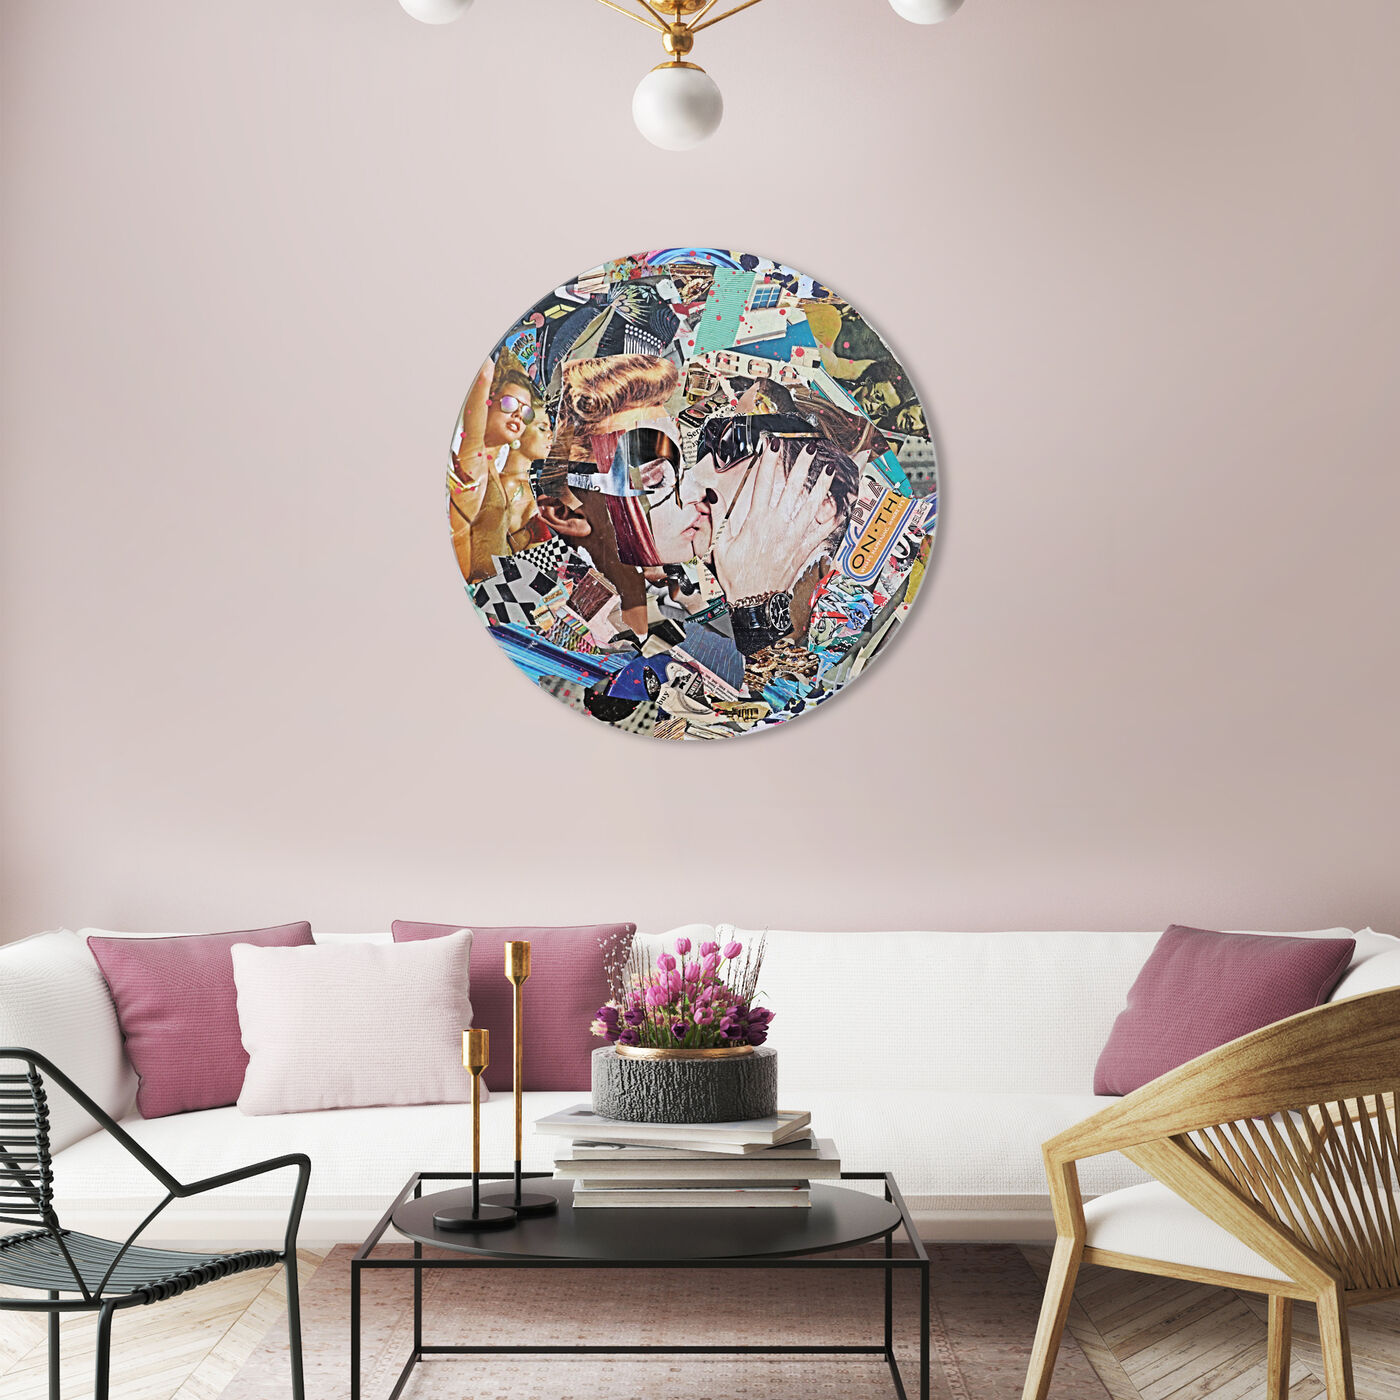 Hanging view of Katy Hirschfeld - Loving Embrace Round featuring fashion and glam and fashion lifestyle art.